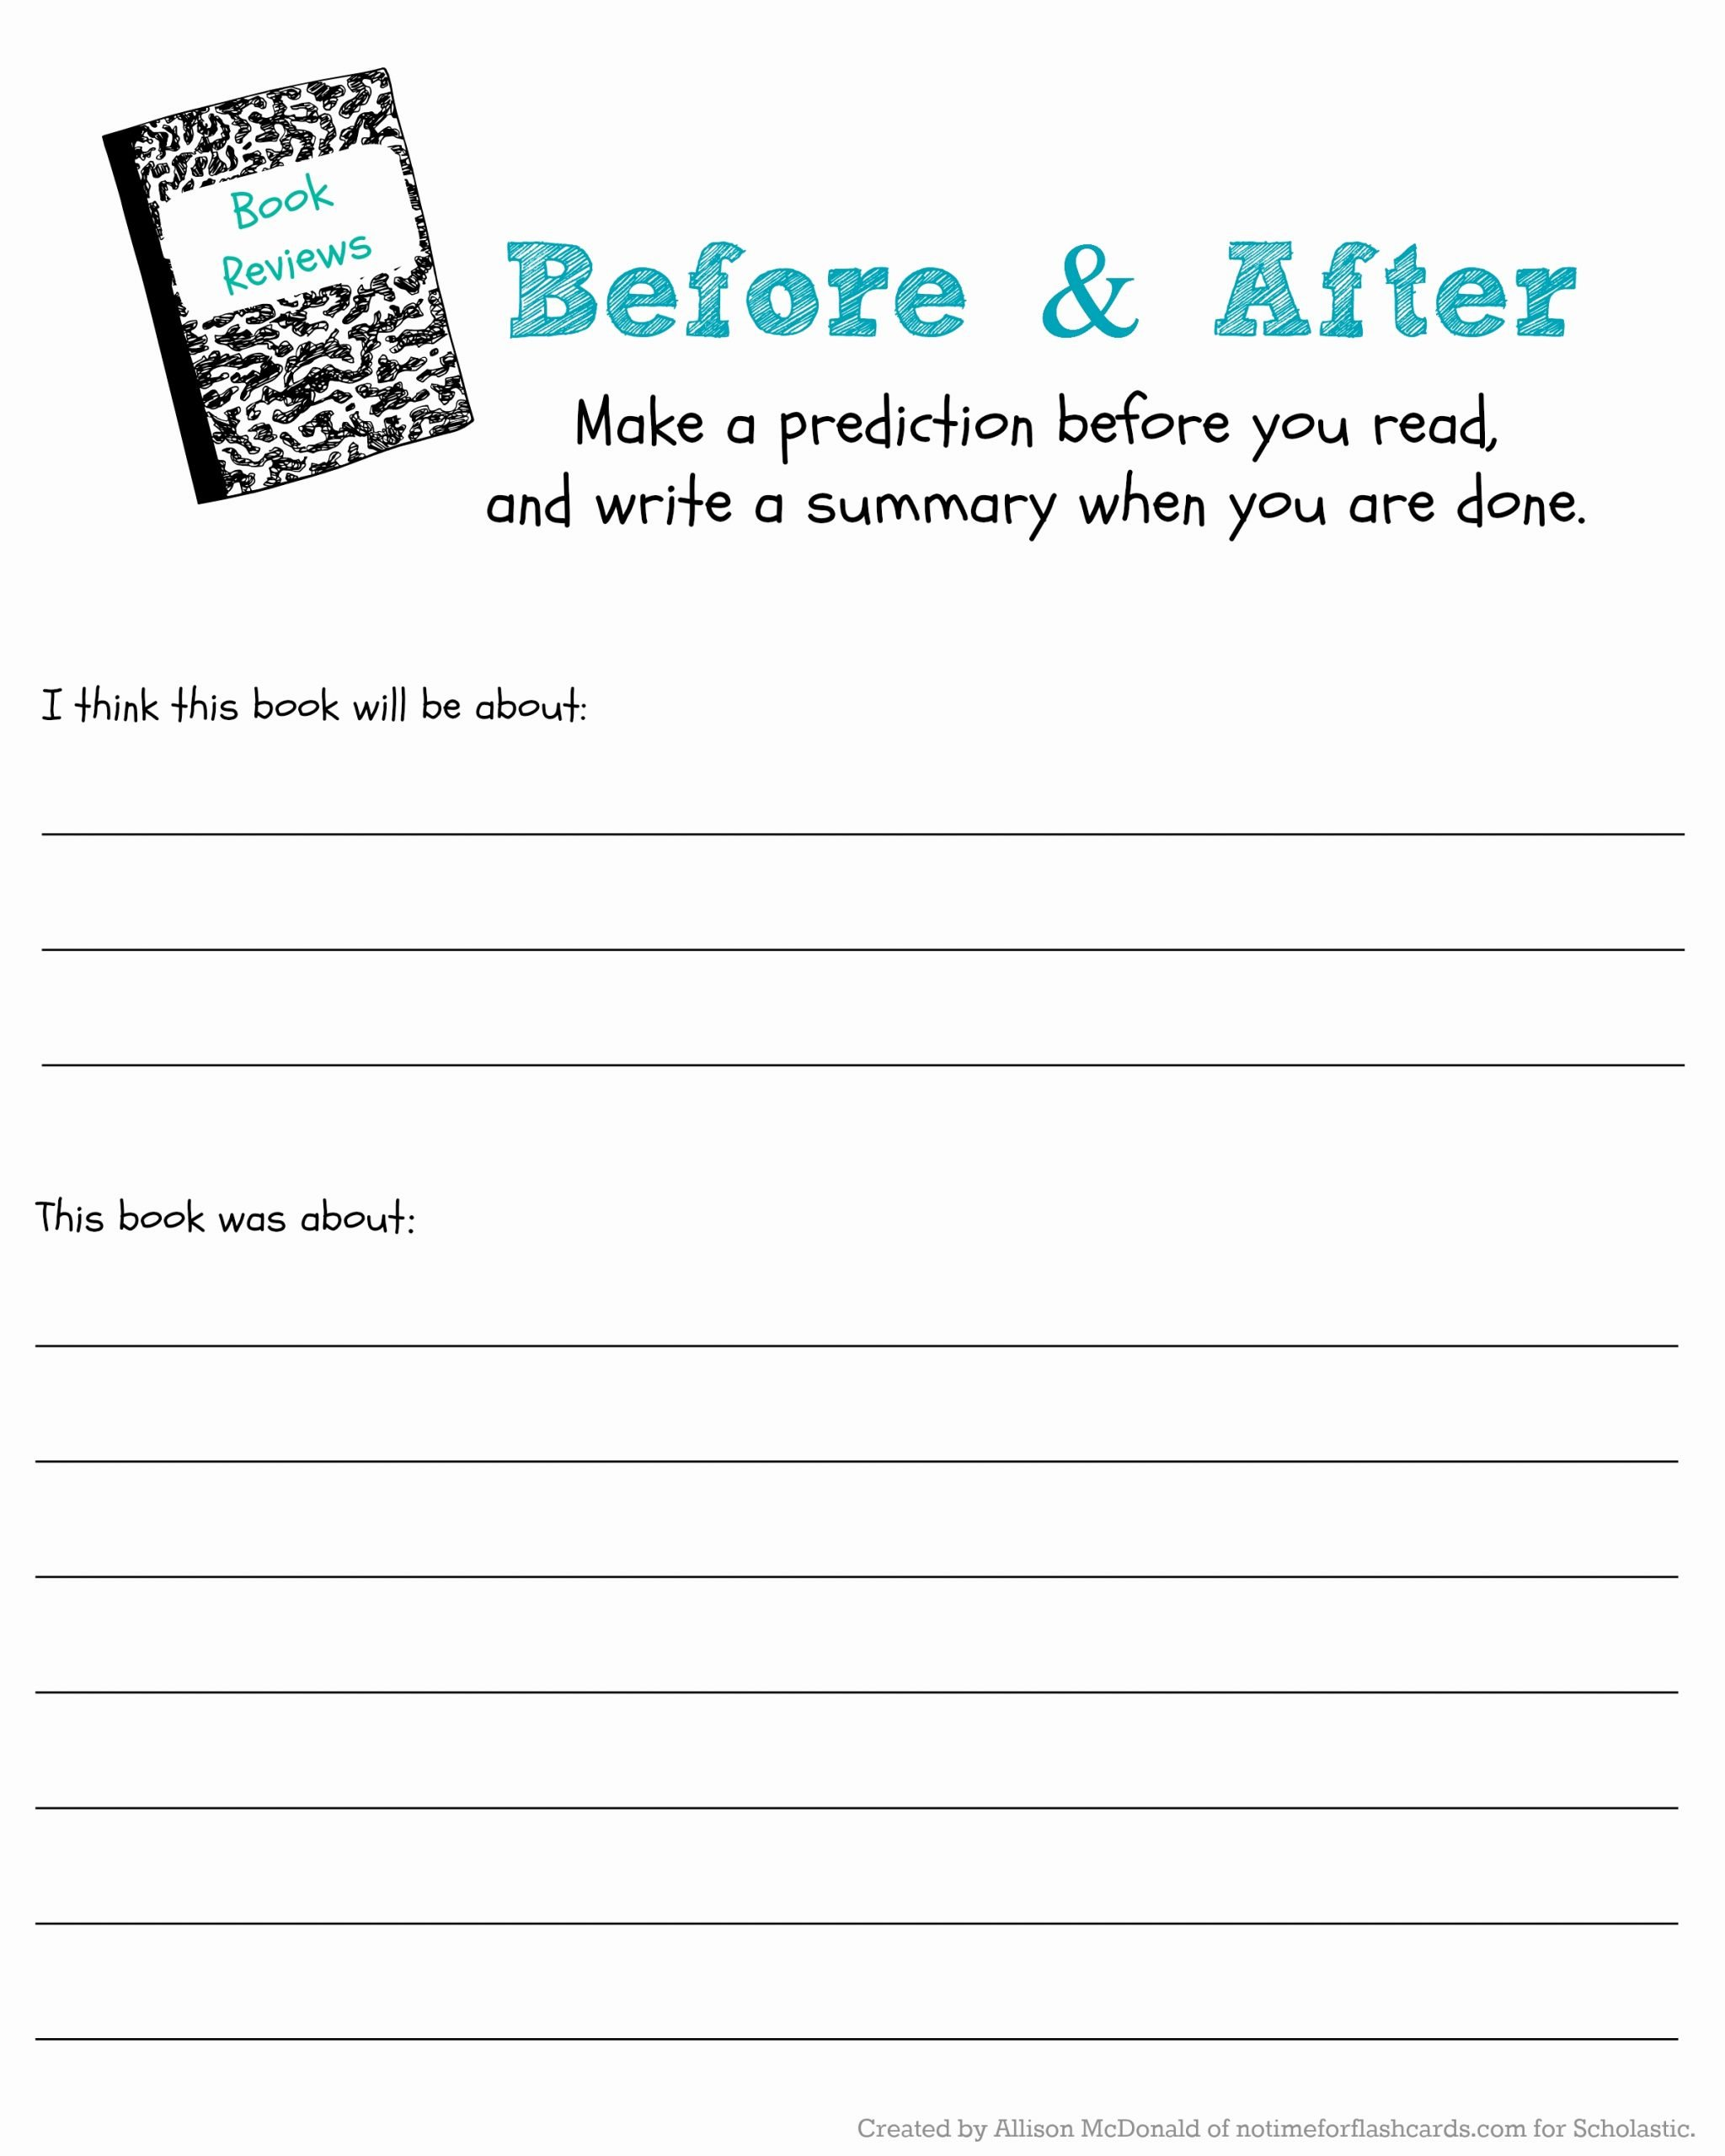 Making Predictions Worksheet 2nd Grade Printable Judge A Book by Its Cover to Predict & Read